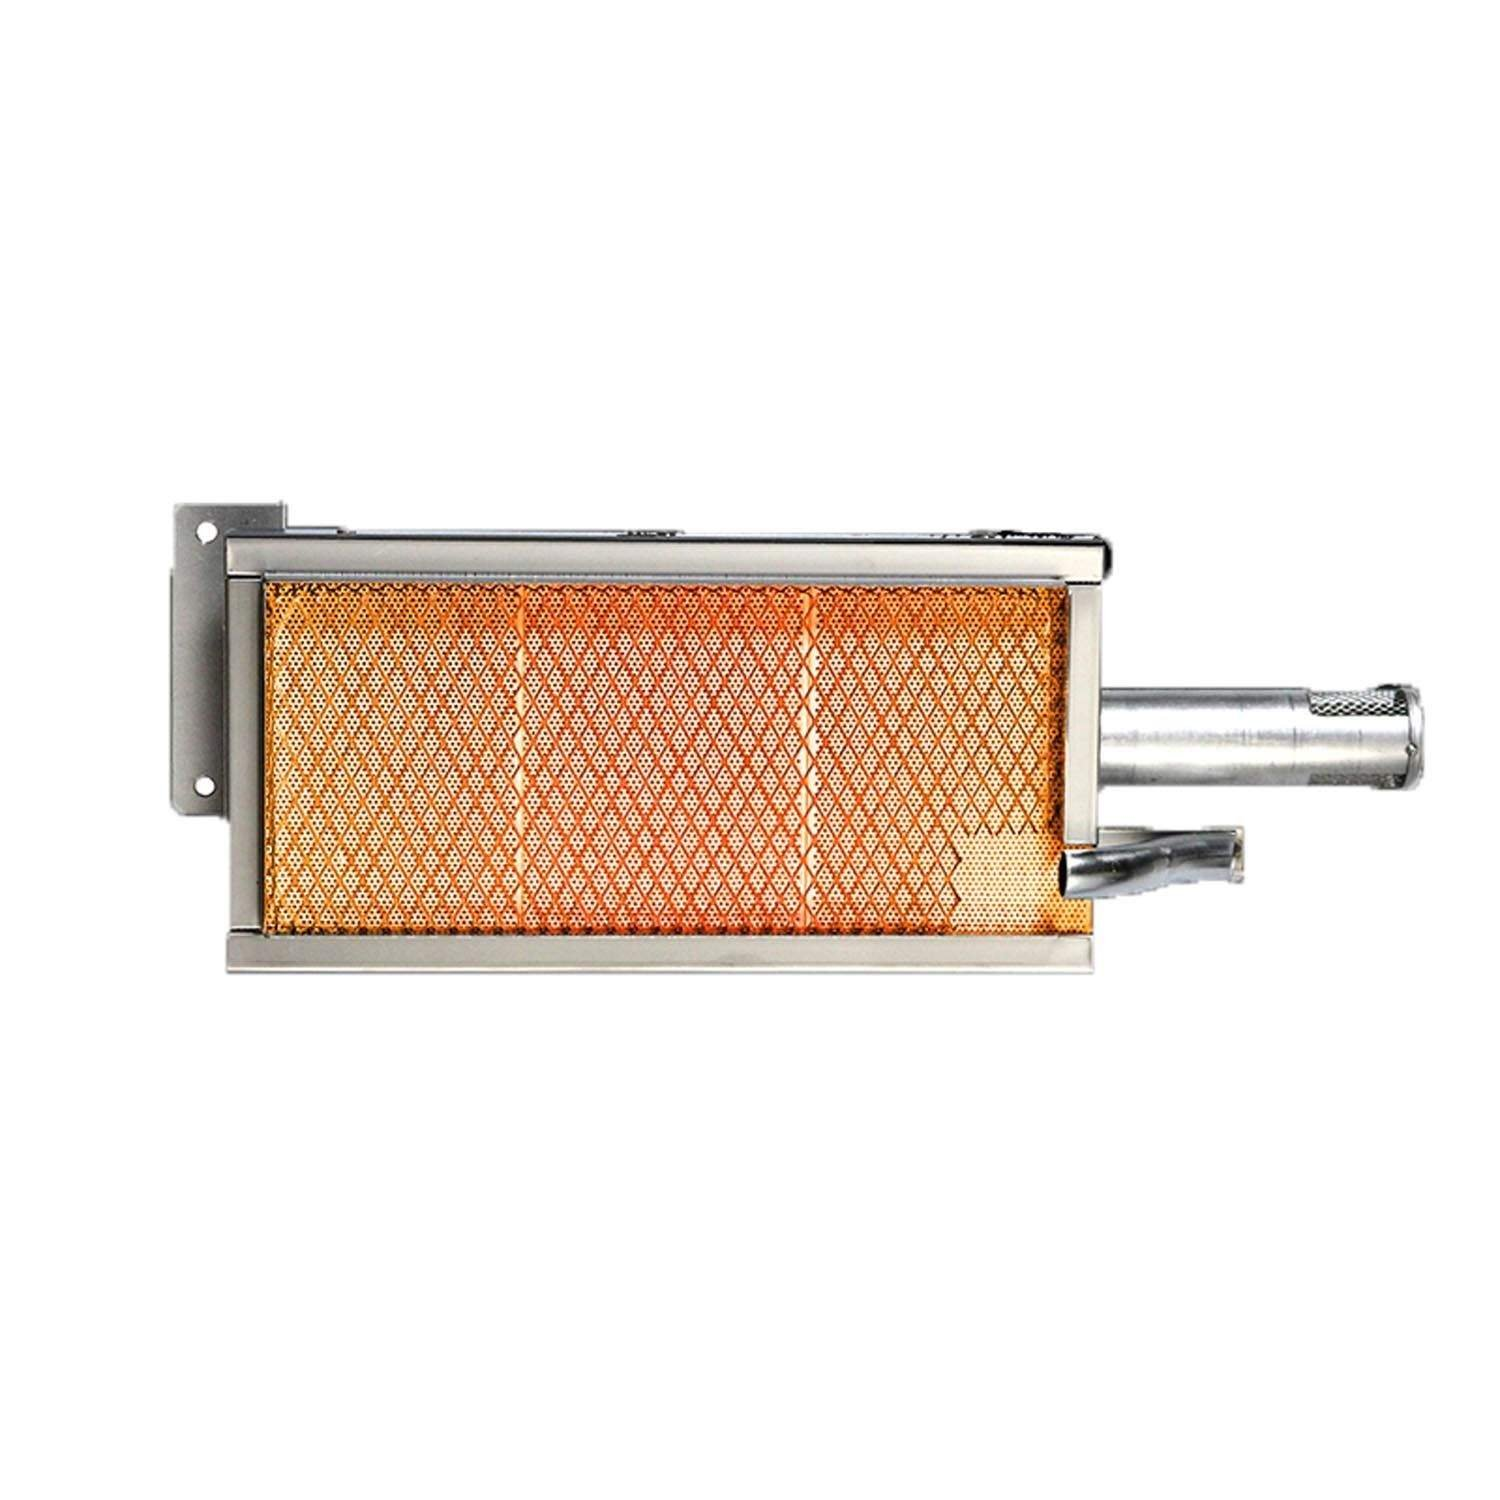 Summerset Grills American Muscle Grill Sear Burner